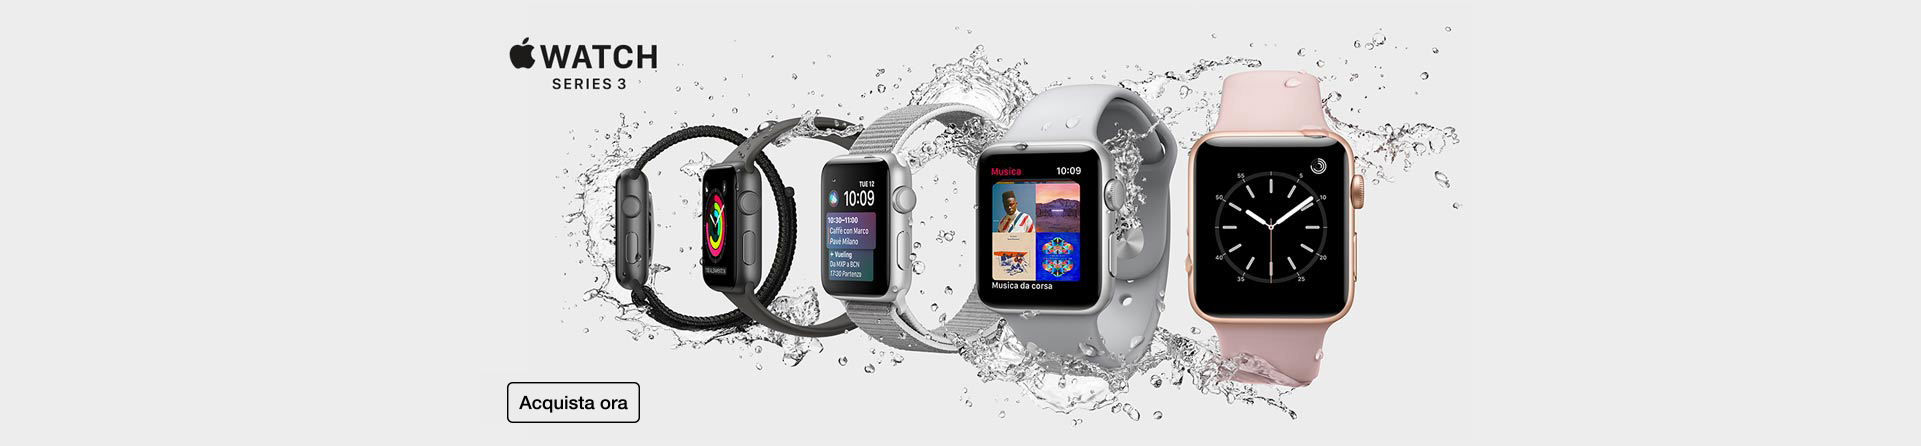 slide-apple-watch-acquista